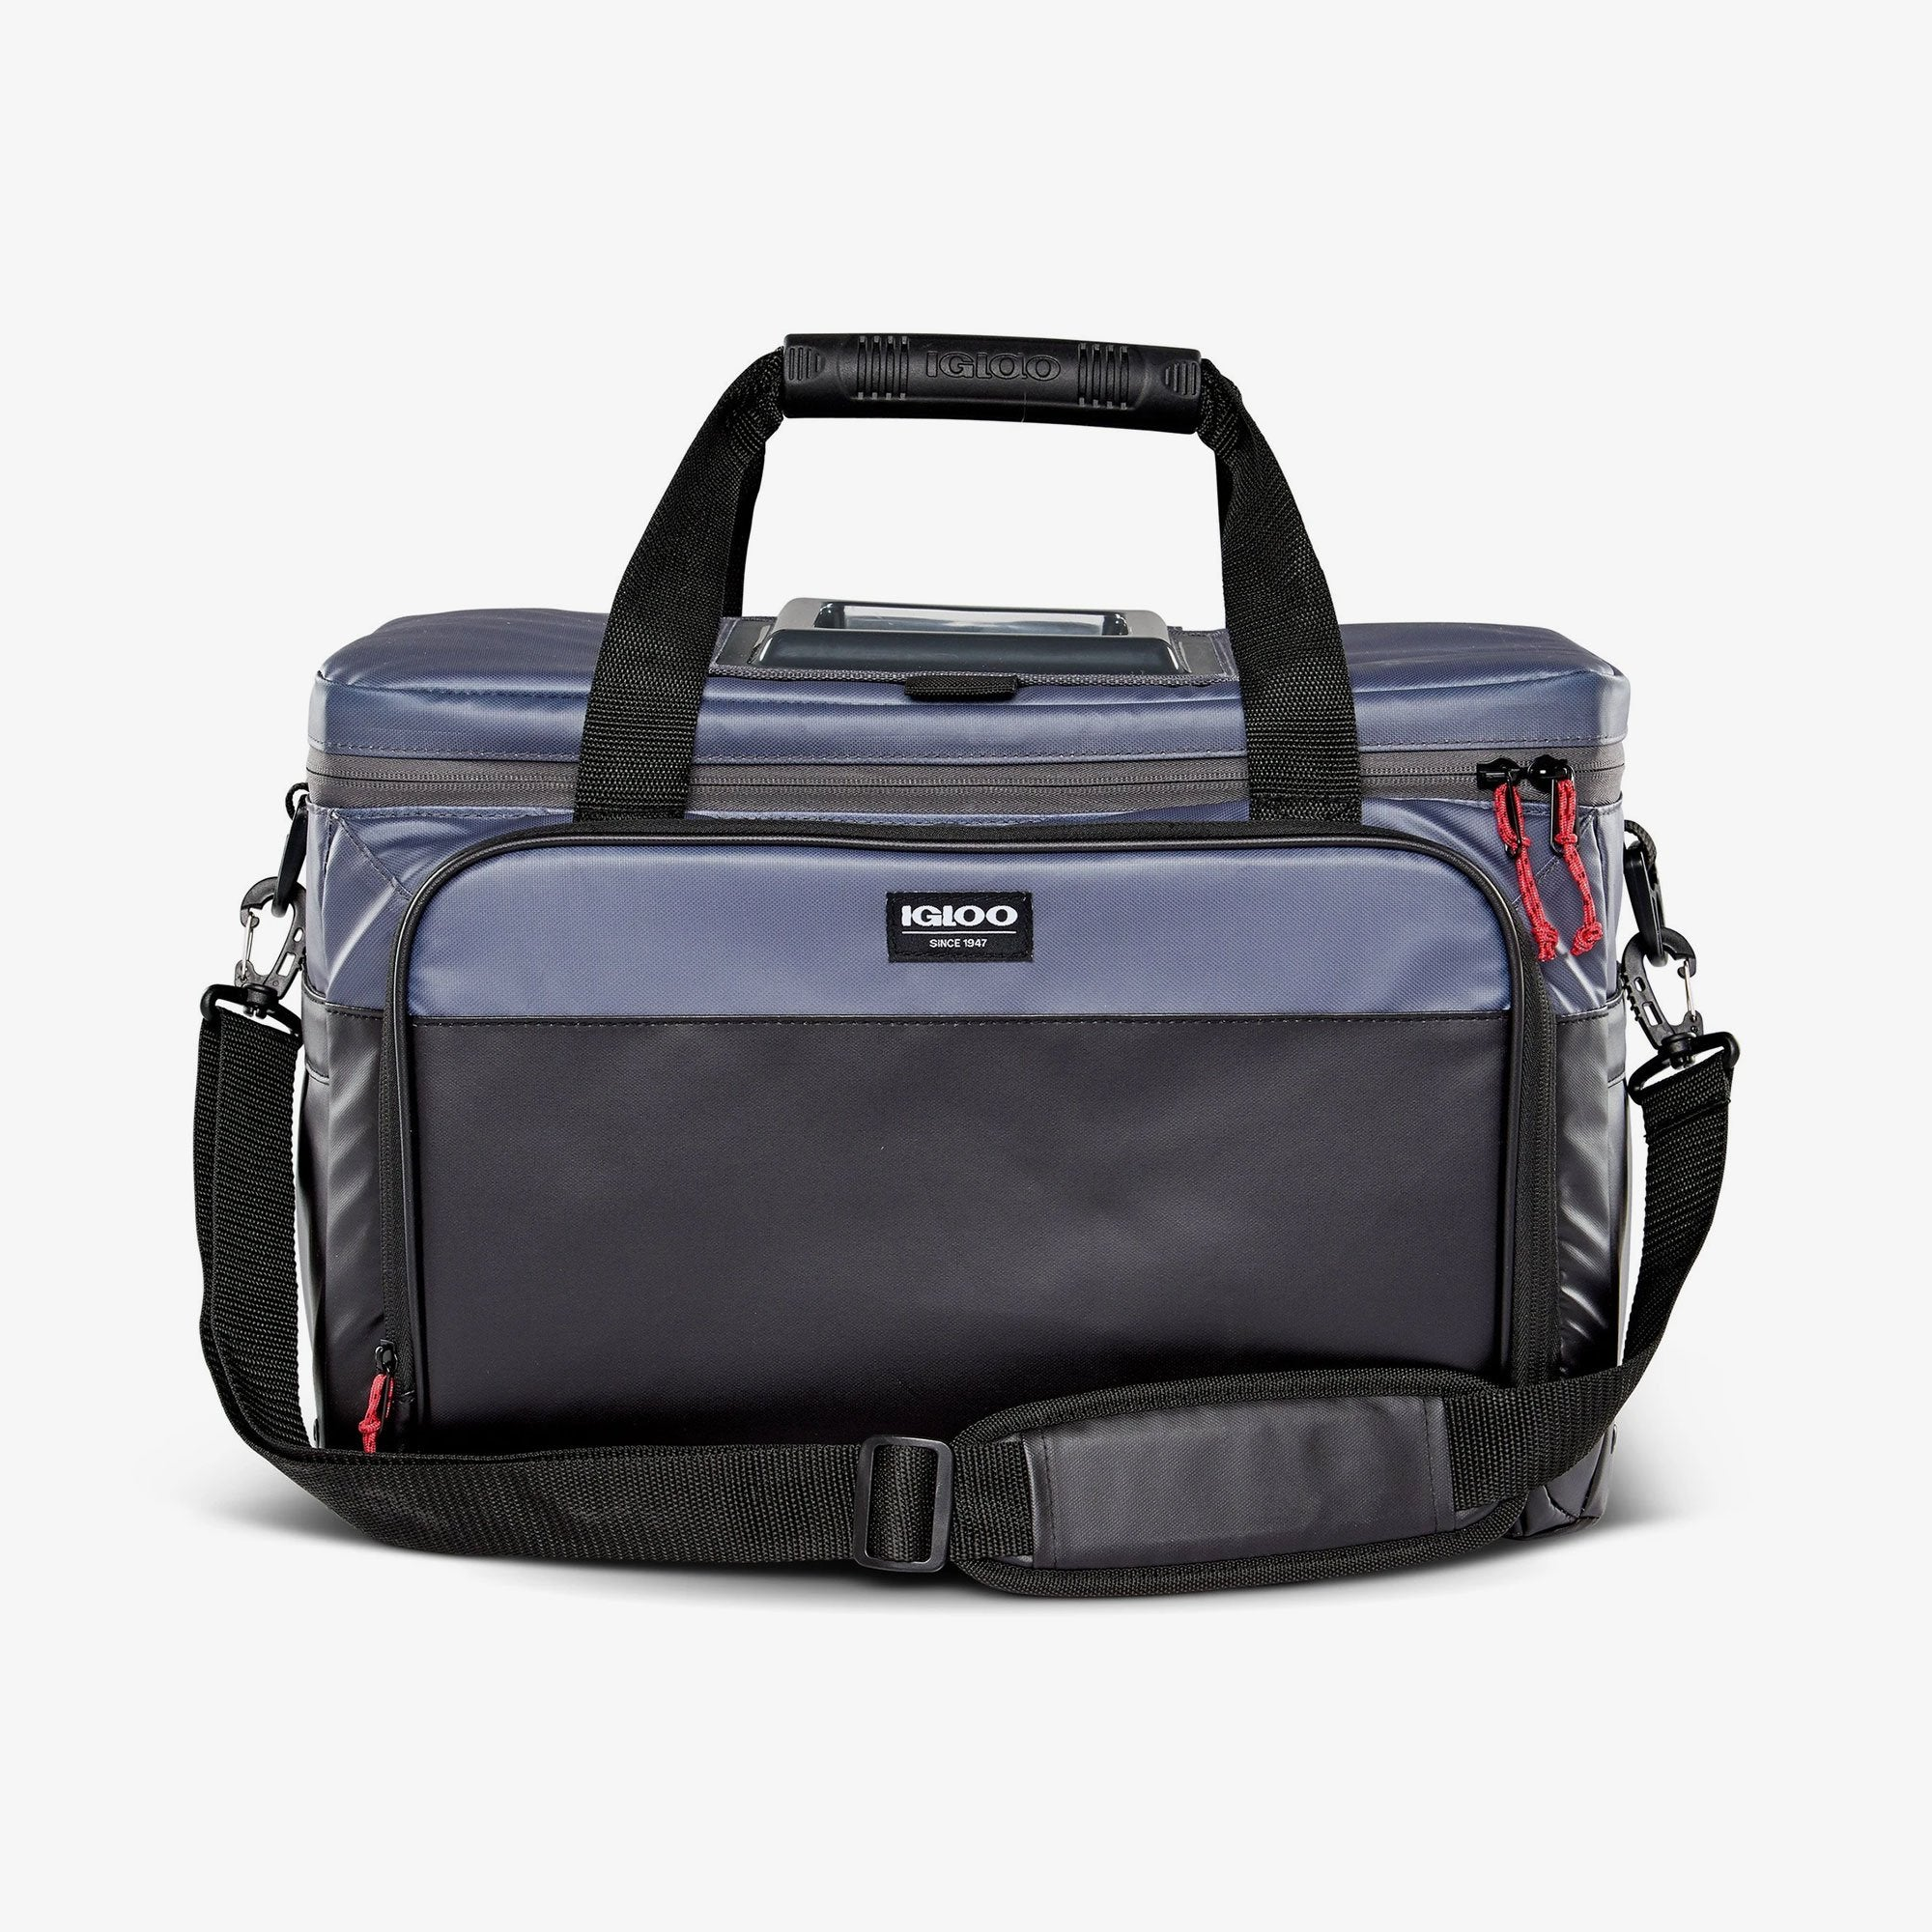 Large View | Seadrift Coast Cooler 36-Can Bag in Black